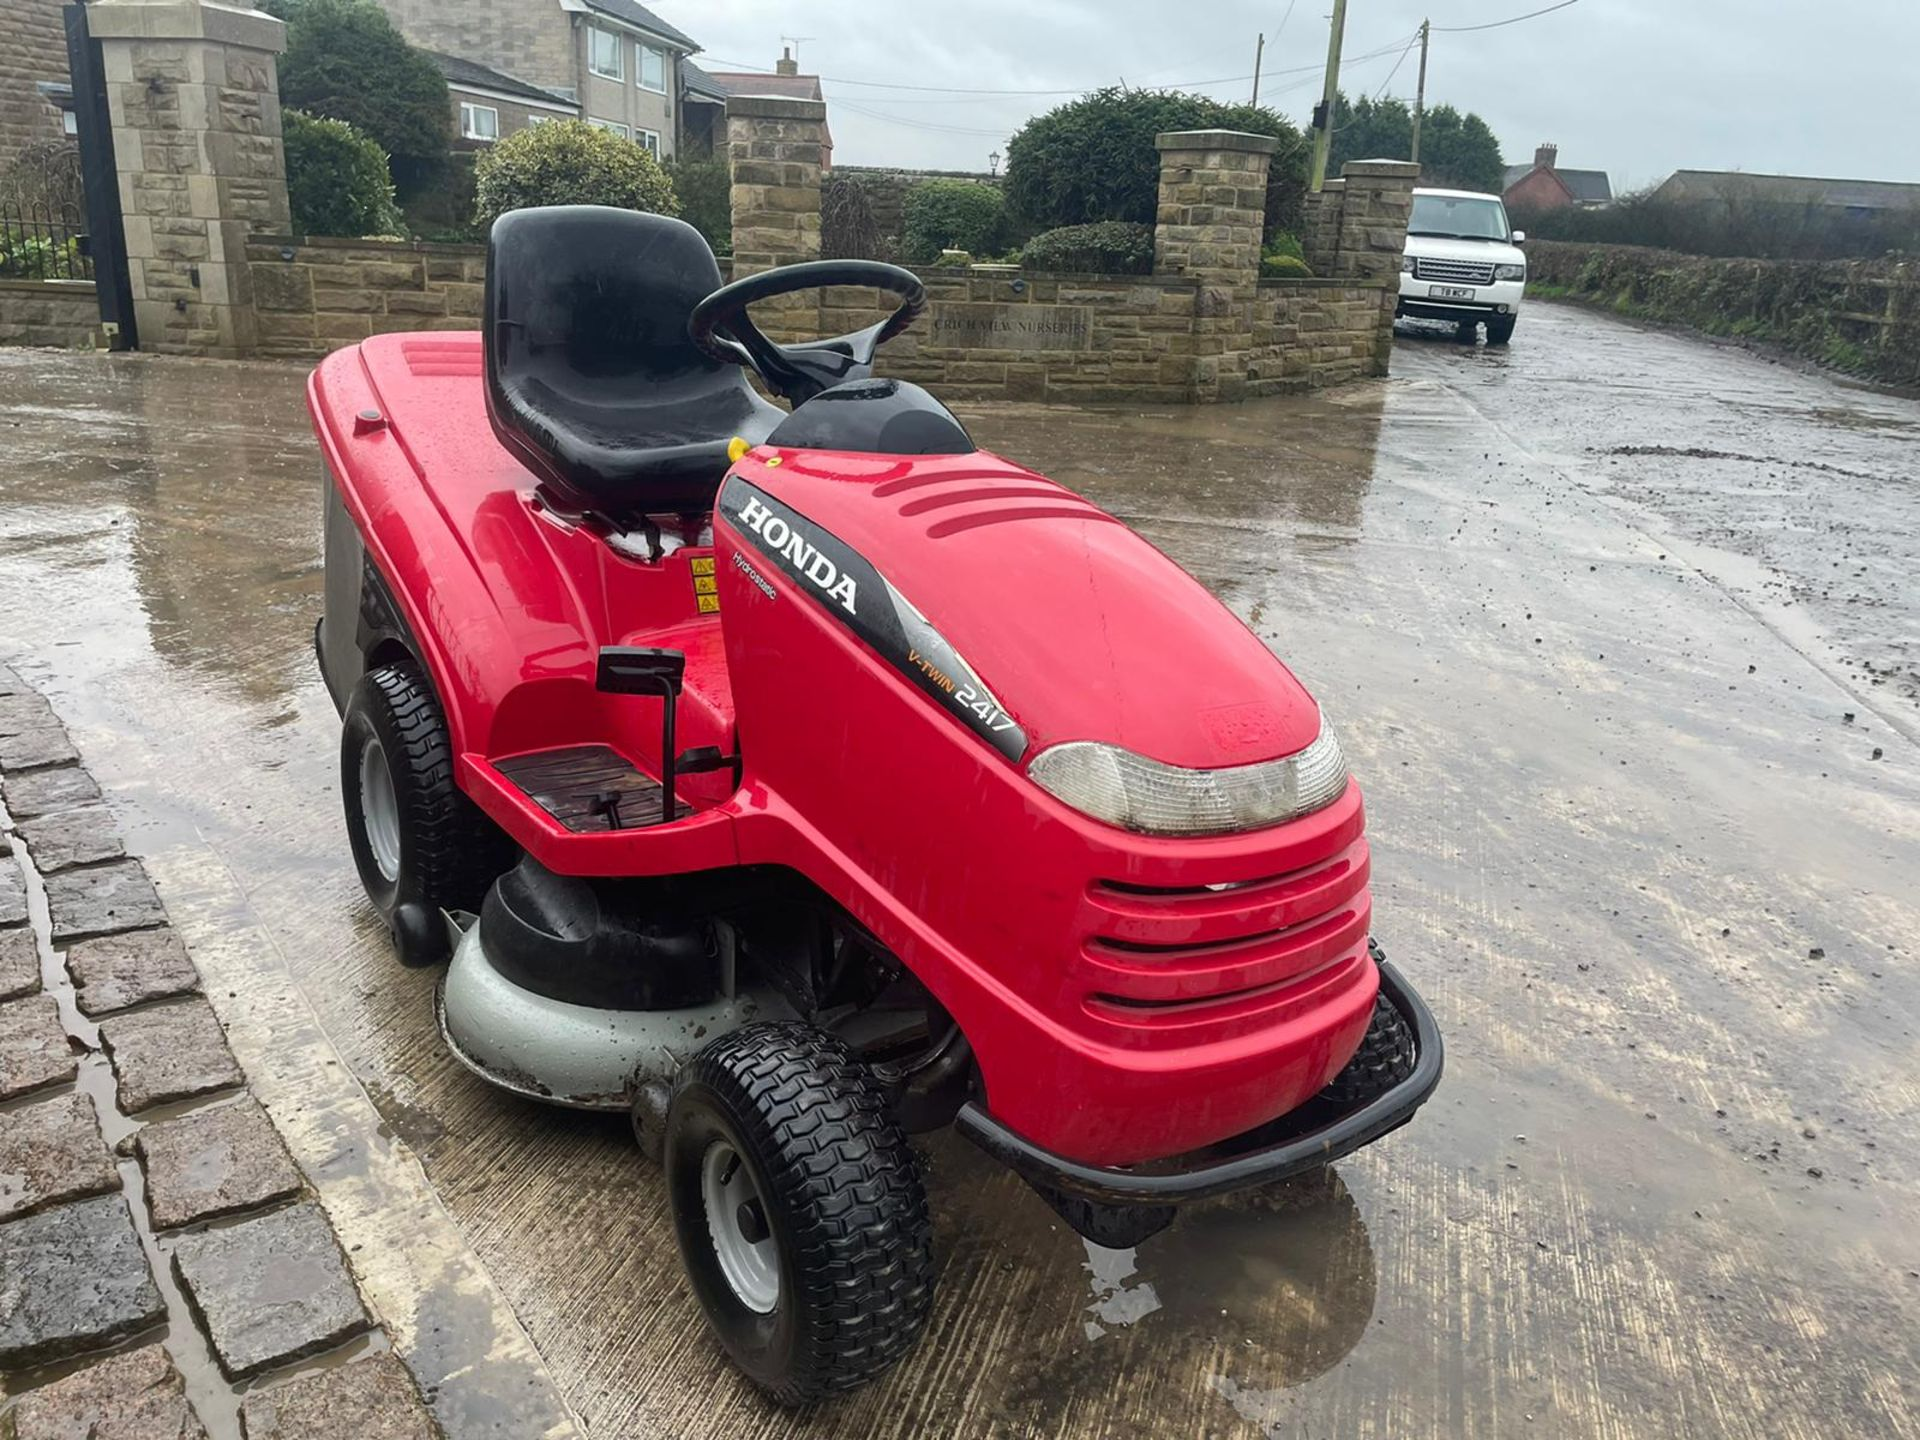 HONDA 2417 V TWIN RIDE ON MOWER, RUNS, DRIVES AND CUTS, ELECTRIC COLLECTOR, CLEAN MACHINE *NO VAT* - Image 5 of 5